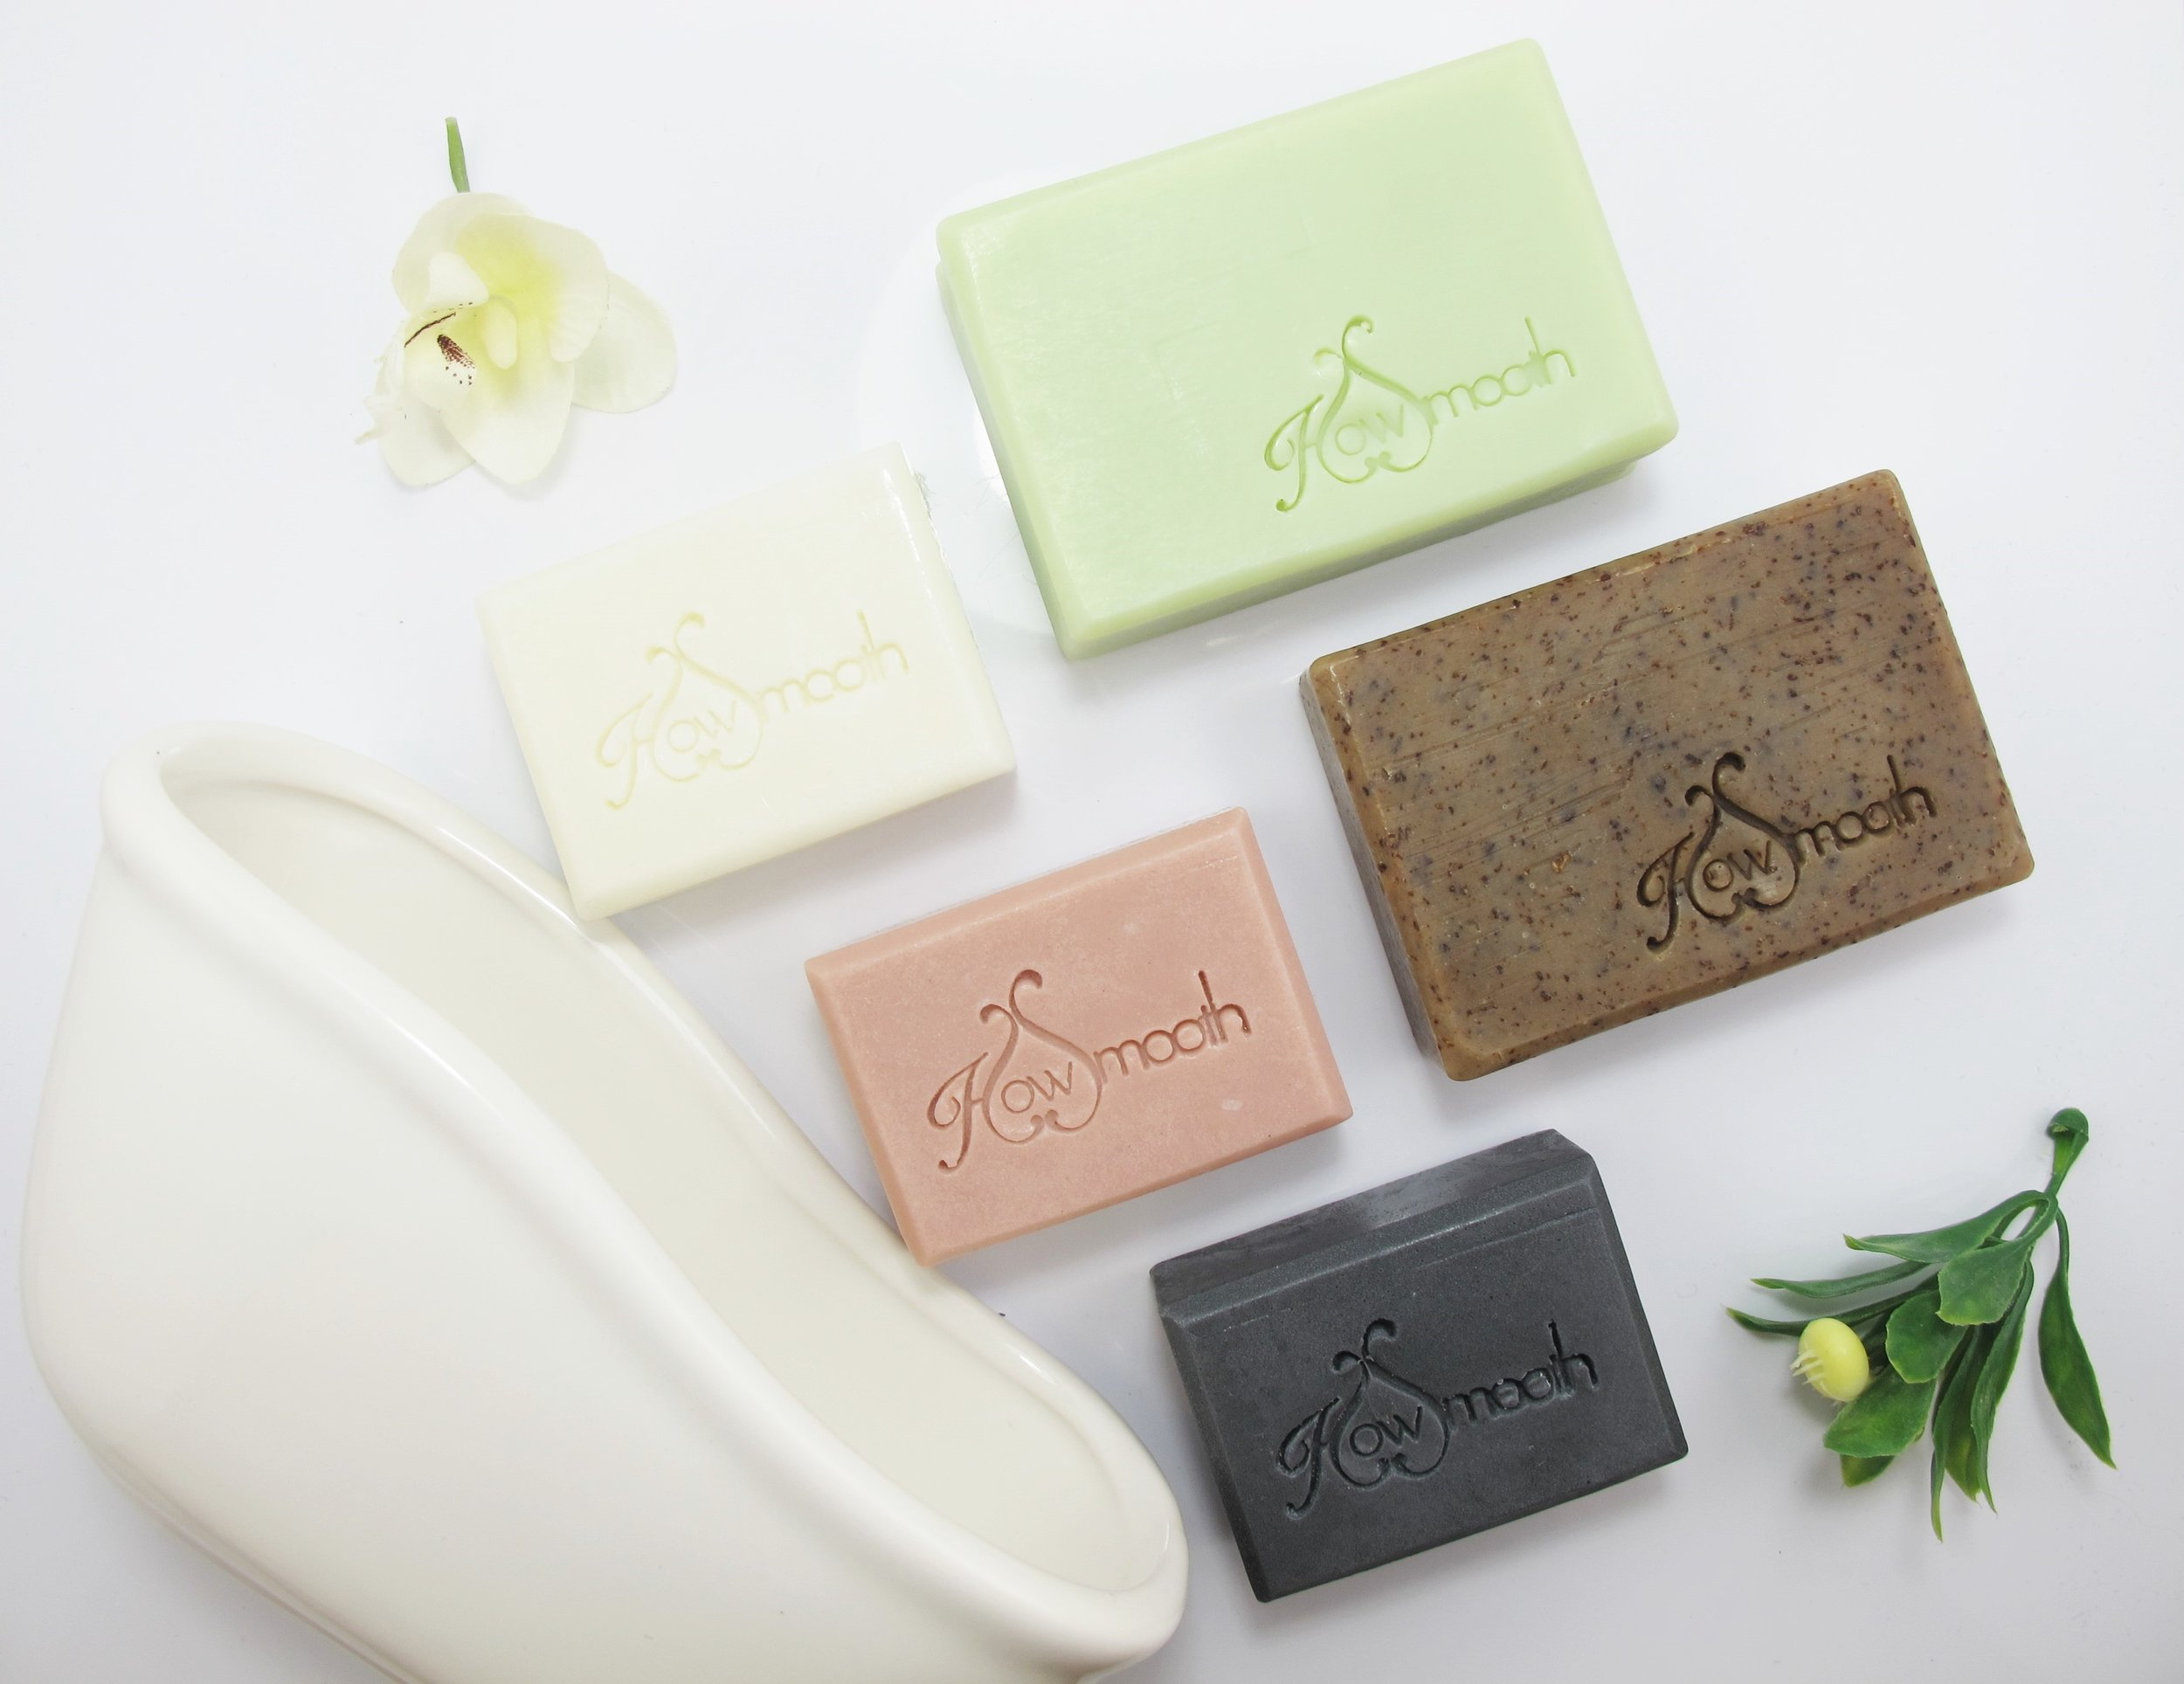 Body Soap 100g and Face Soap 50g